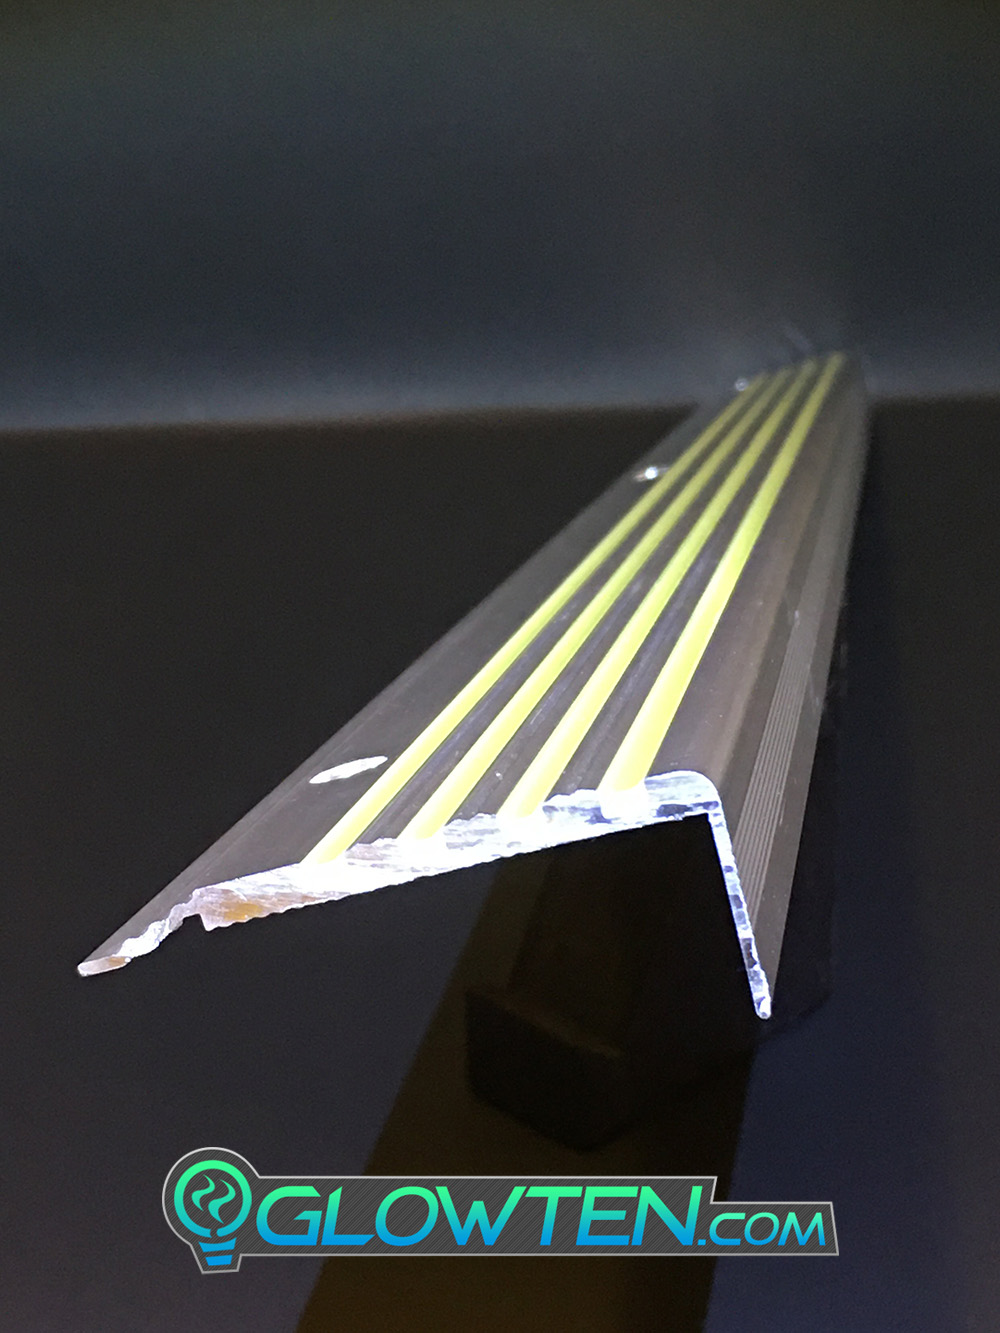 GLOWTEN.com - ANTI-SLIP STAIRS TREAD 4-BANDS FOURBANDS NOSING GLOW IN THE DARK LUMINOUS SAFETY STRIP All Purpose Out Door All Weather Photoluminescent Stripe NON-SKID SEE BETTER AT NIGHT PREVENT FALLING GRIP STRENGTH FOR MINIMUM 31.5